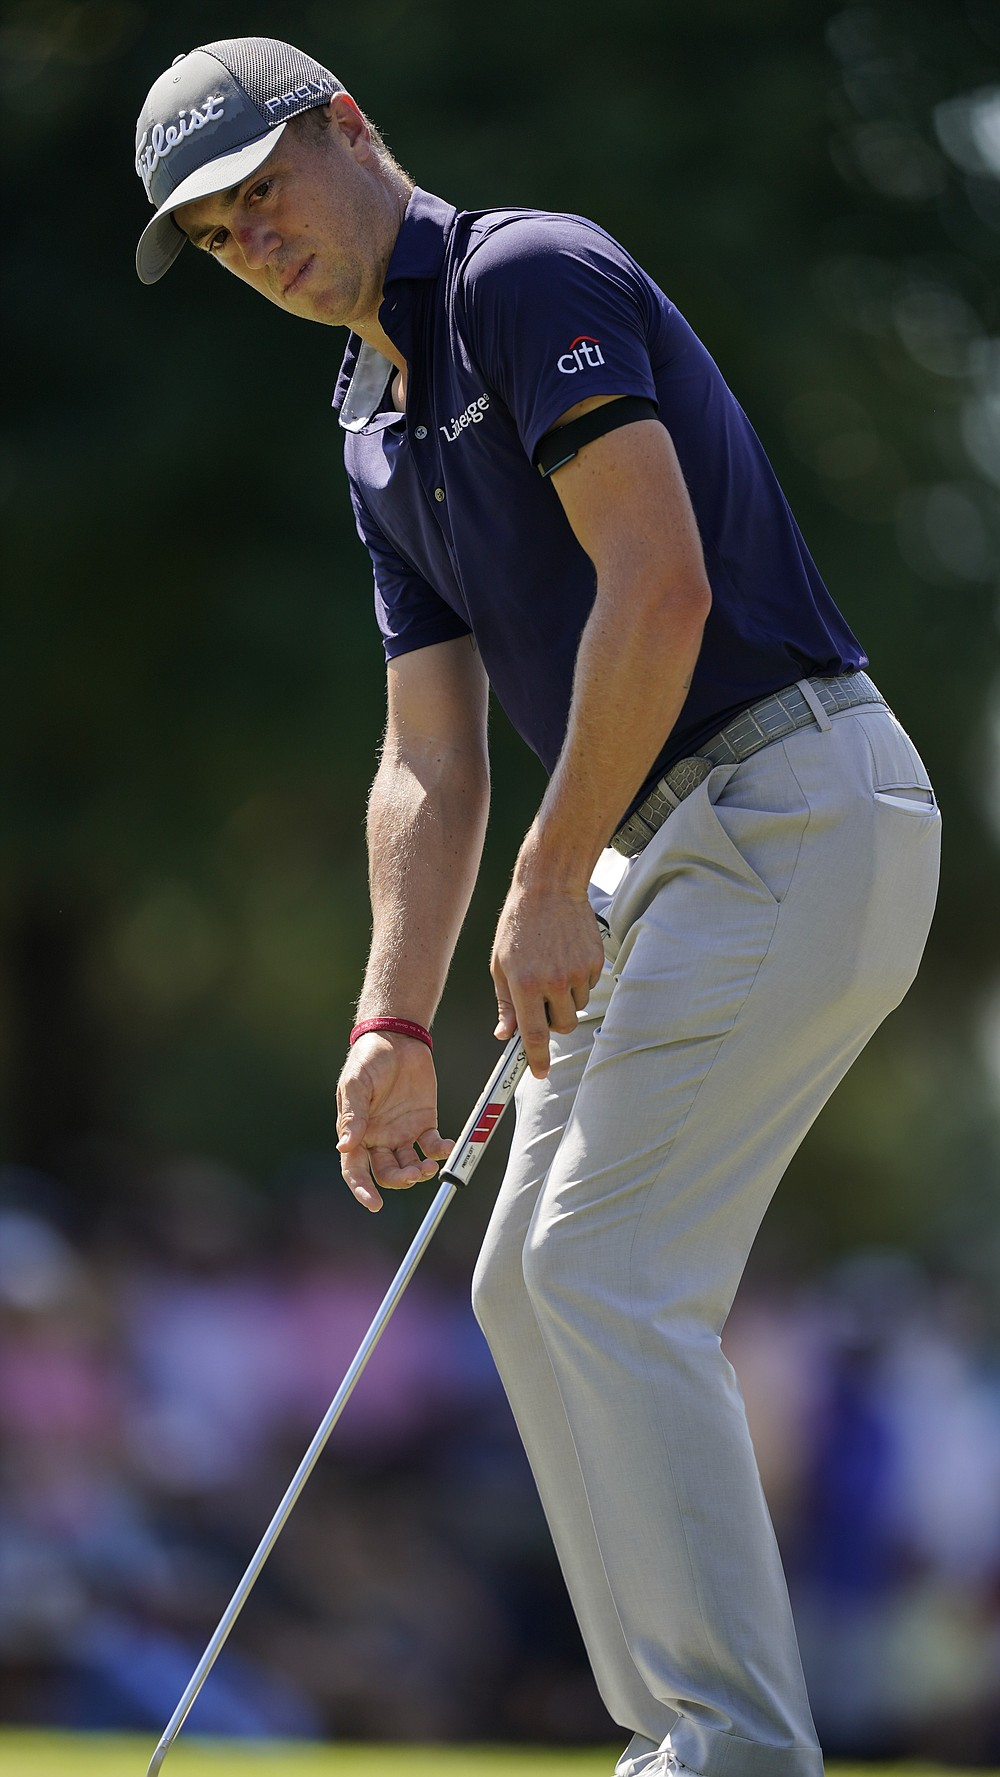 Justin Thomas reacts after his putt on the first green during the third round of the Tour Championship golf tournament Saturday, Sept. 4, 2021, at East Lake Golf Club in Atlanta. (AP Photo/Brynn Anderson)